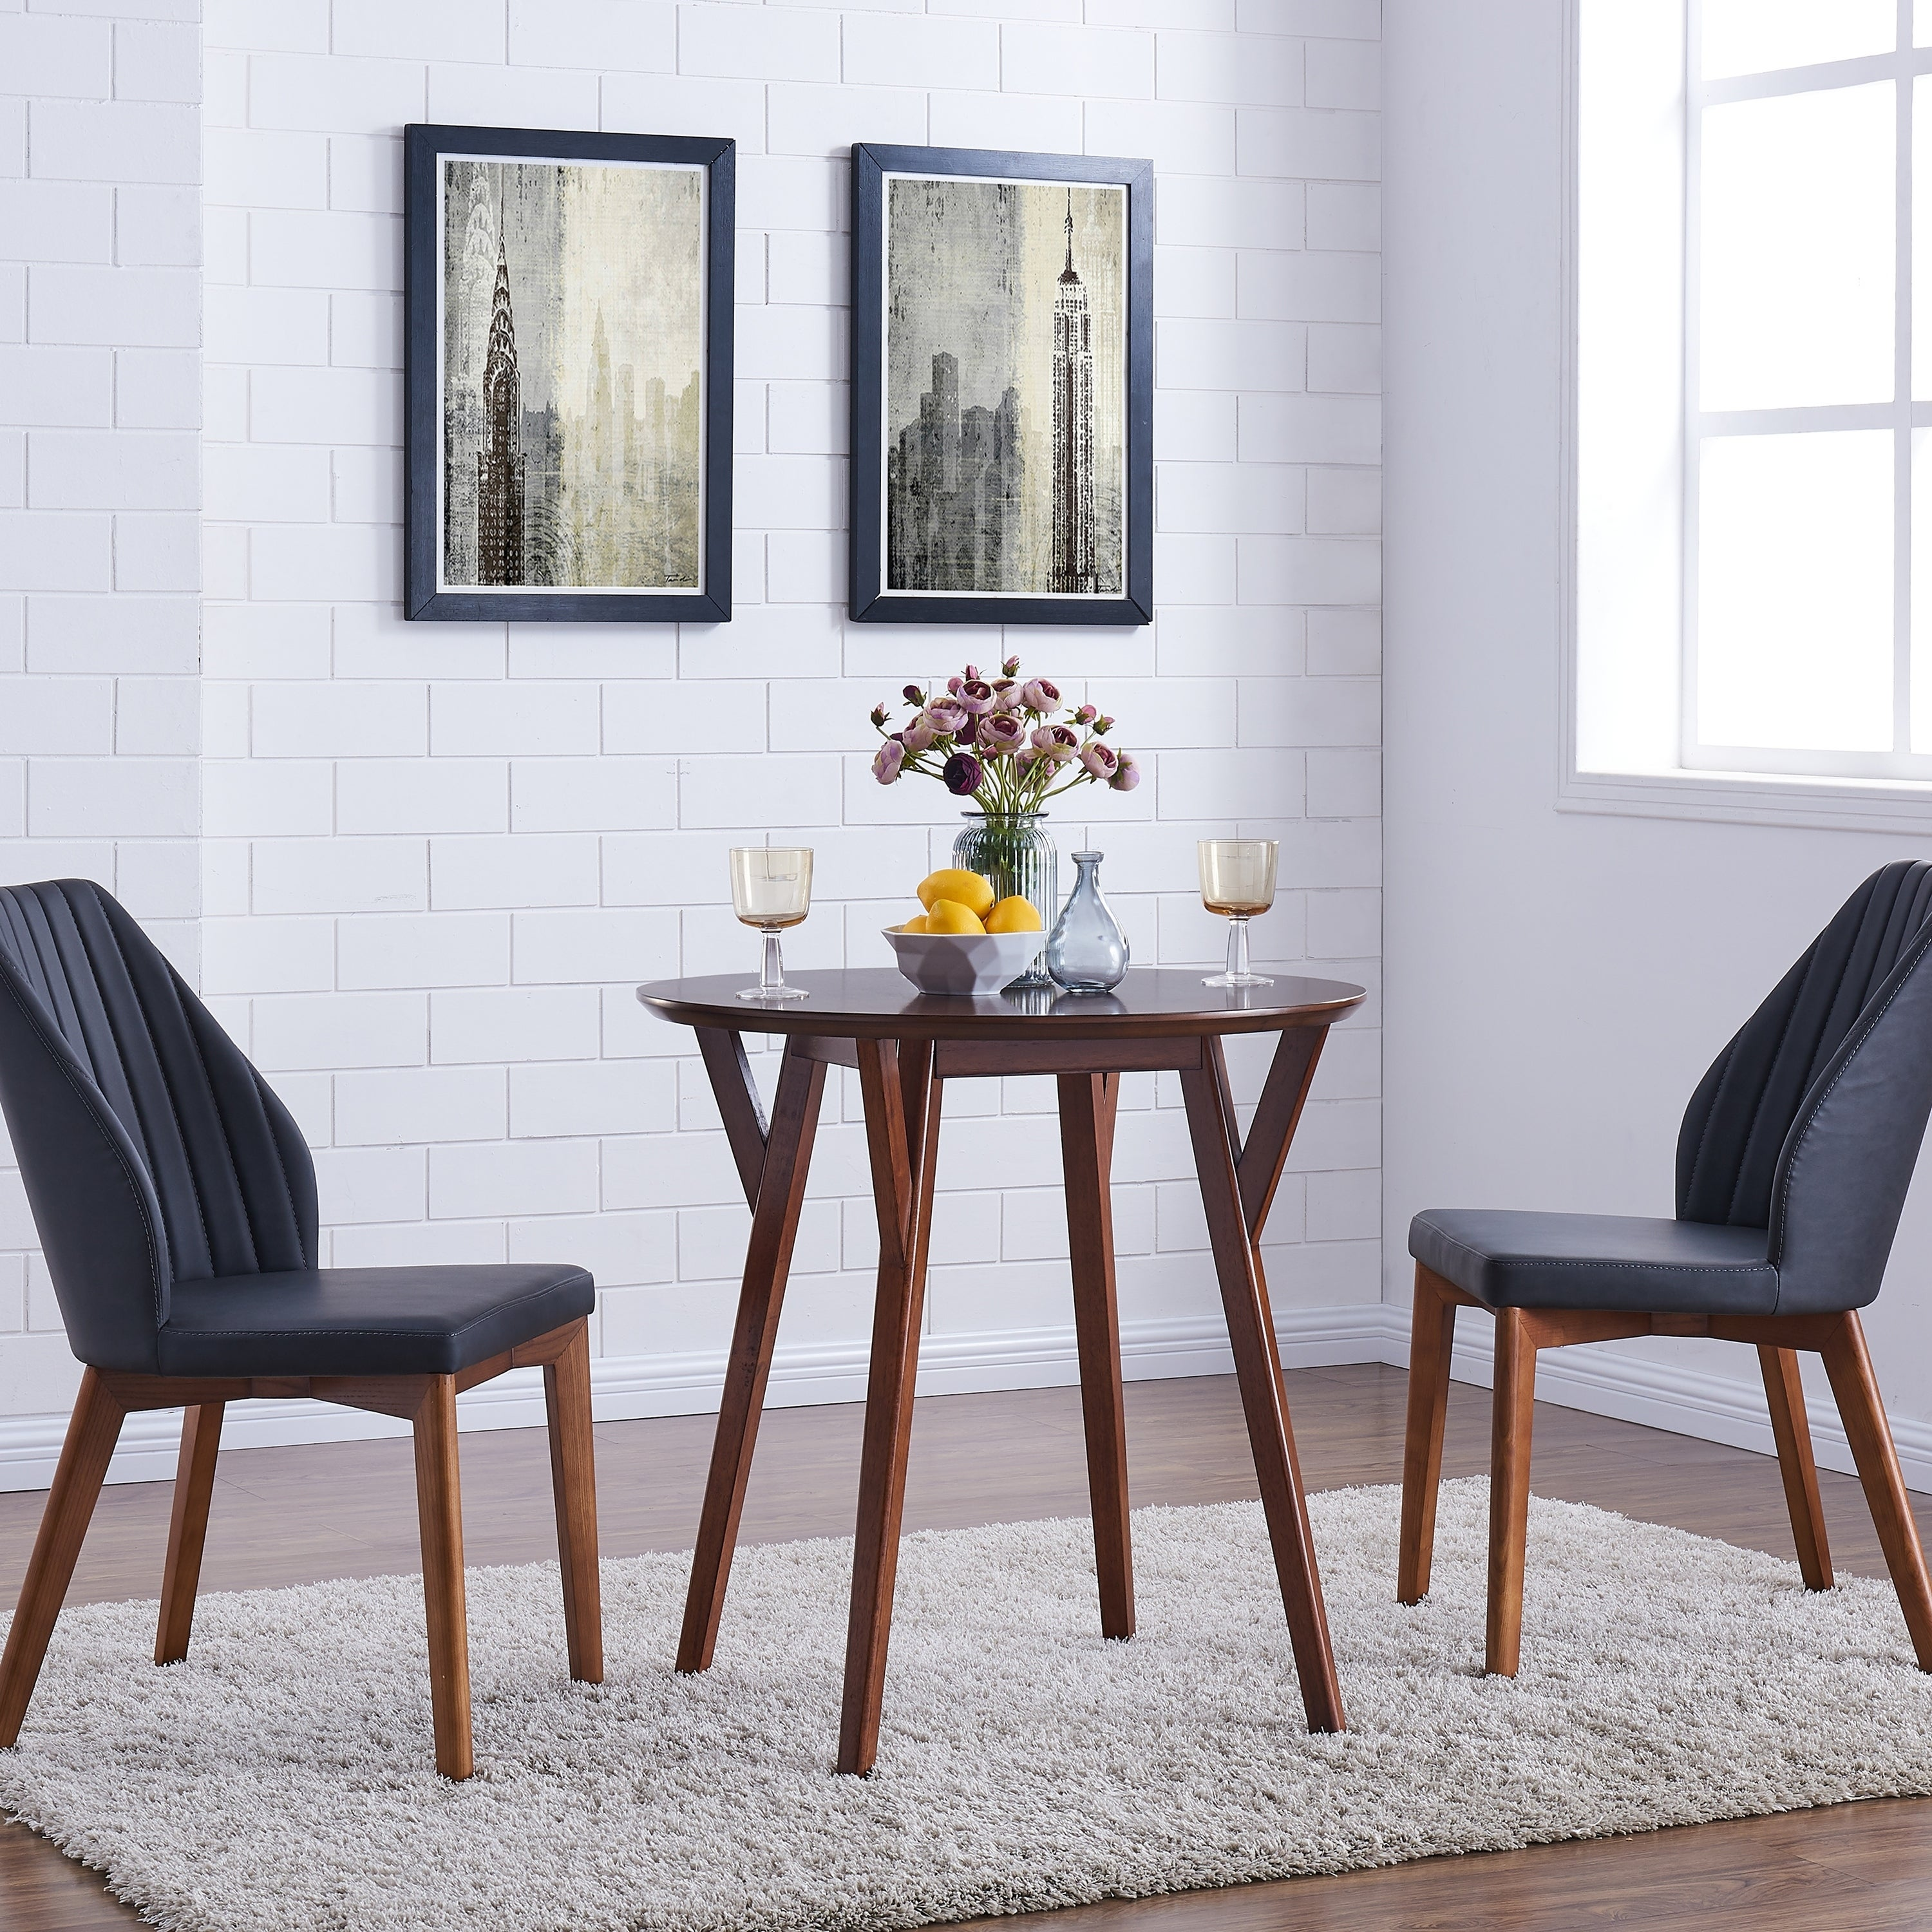 Space friendly furniture Sofa Bed Shop Harper Blvd Shanna Round Dark Sienna Small Space Dining Table Brown Free Shipping On Orders Over 45 Overstockcom 19568129 Ashley Furniture Homestore Shop Harper Blvd Shanna Round Dark Sienna Small Space Dining Table